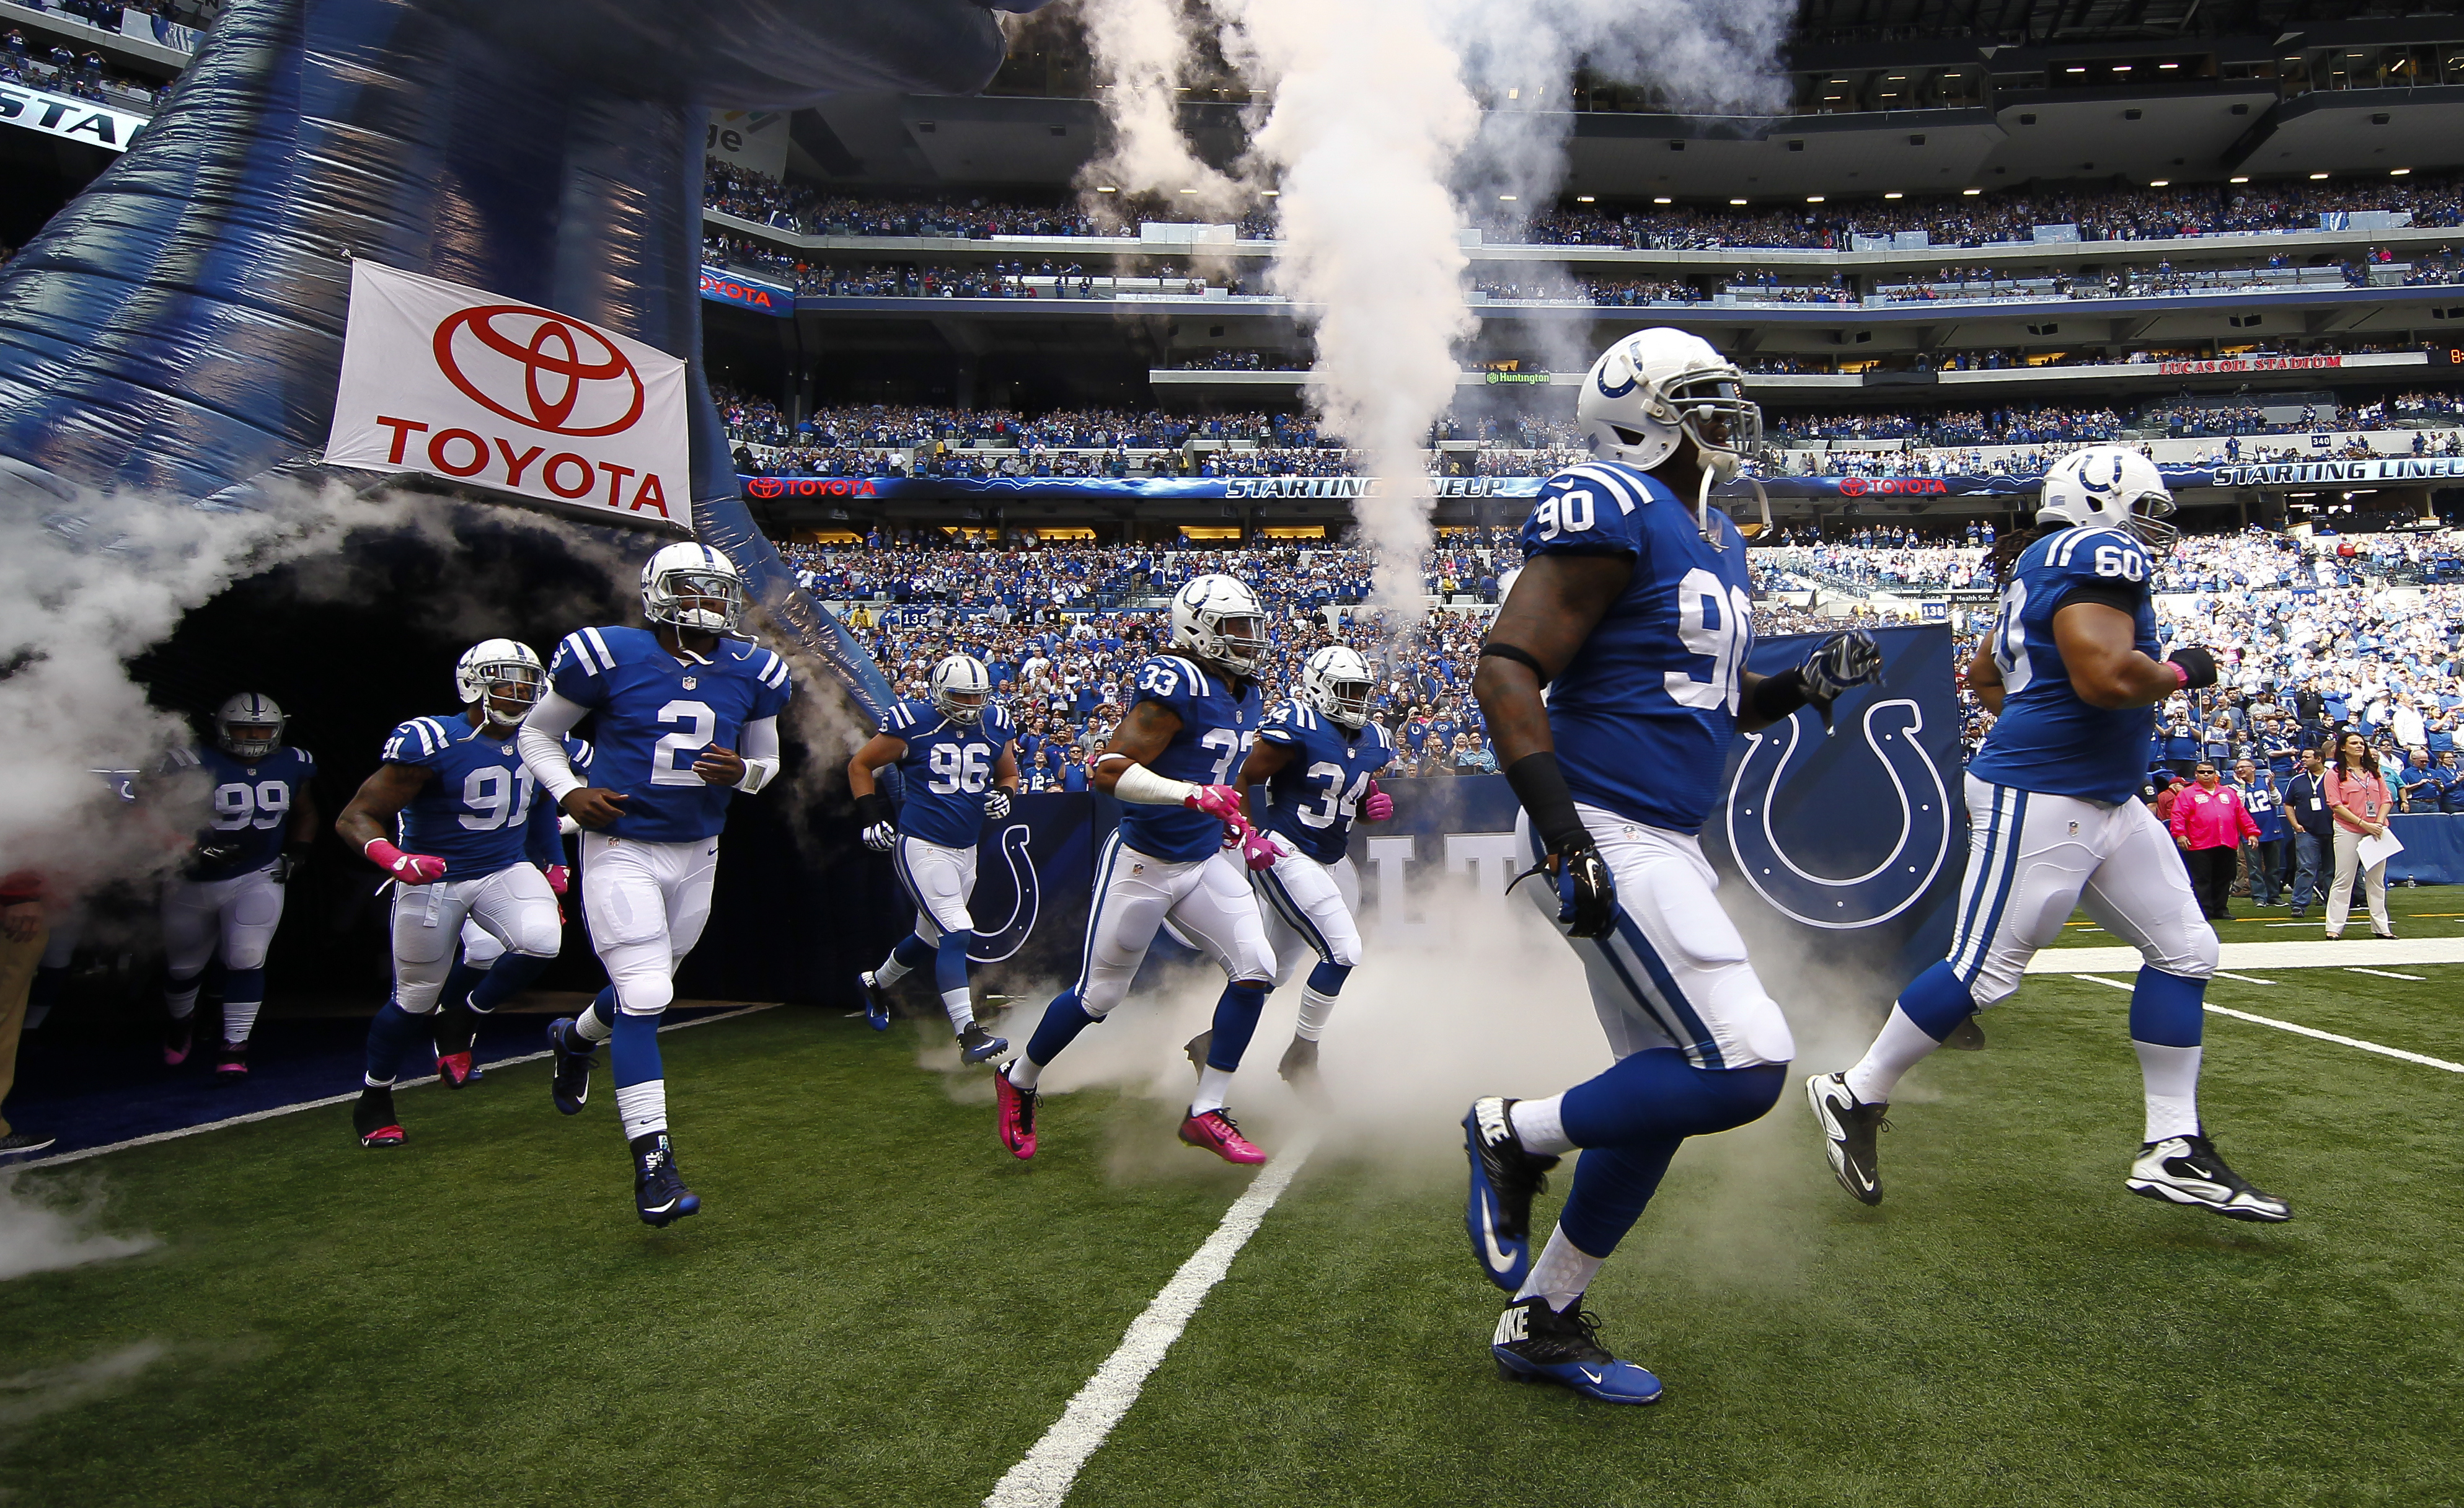 Members of the Indianapolis Colts take the field before the game against the Jacksonville Jaguars at Lucas Oil Stadium on October 4, 2015, in Indianapolis, Indiana.